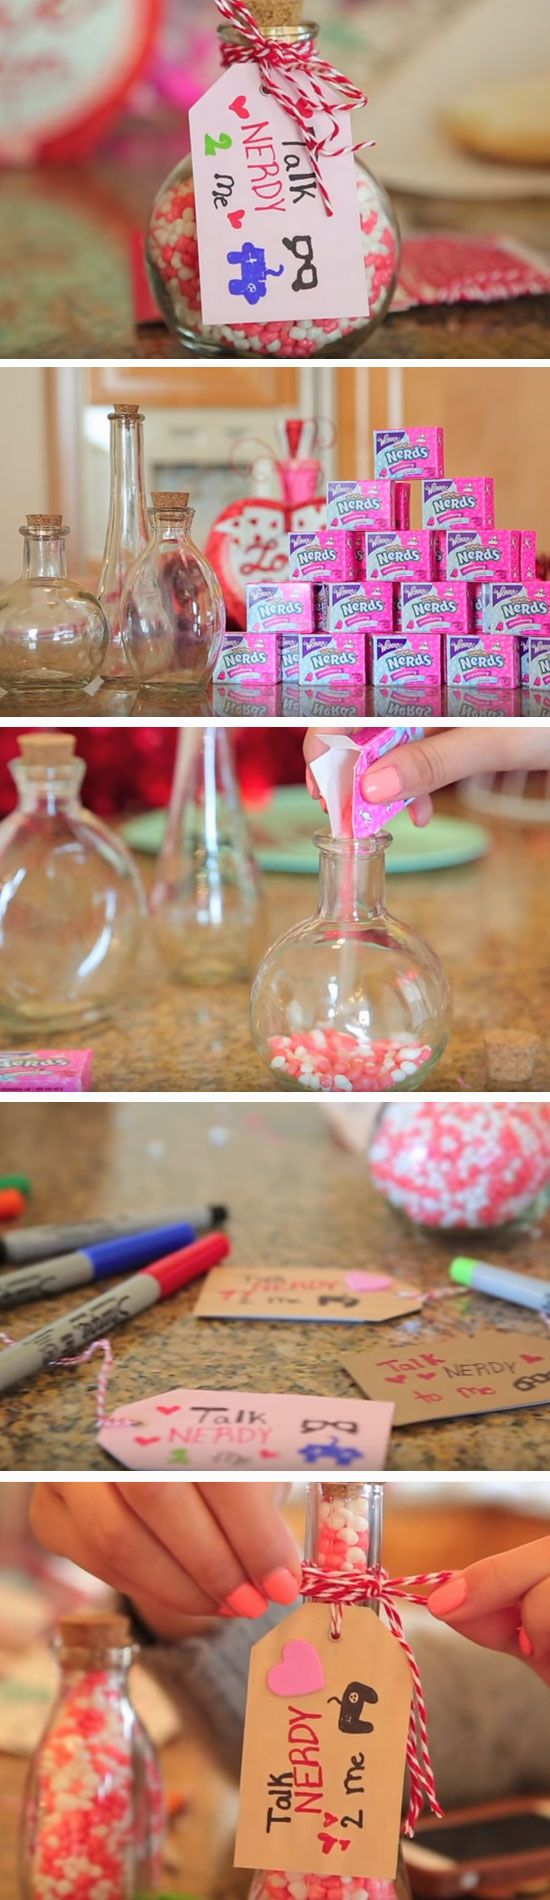 Talk Nerdy to Me | DIY Valentines Gift in a Jar Ideas for Kids | Easy DIY Anniversary Gift Ideas for Him